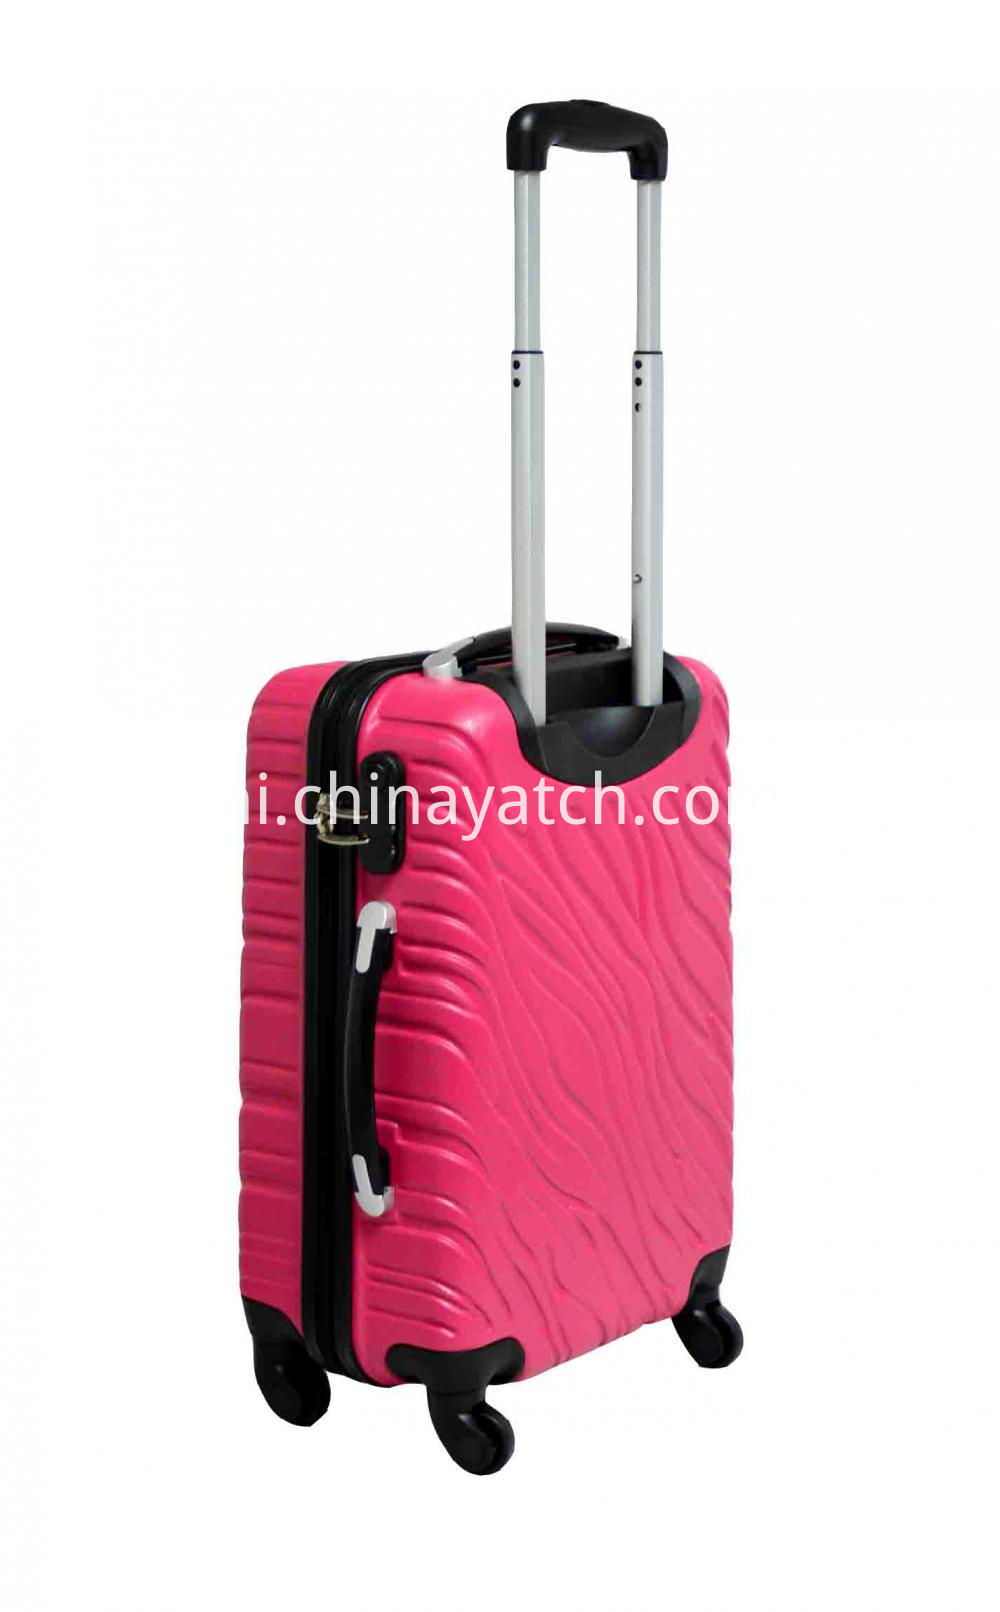 Luggage With Fixed Color